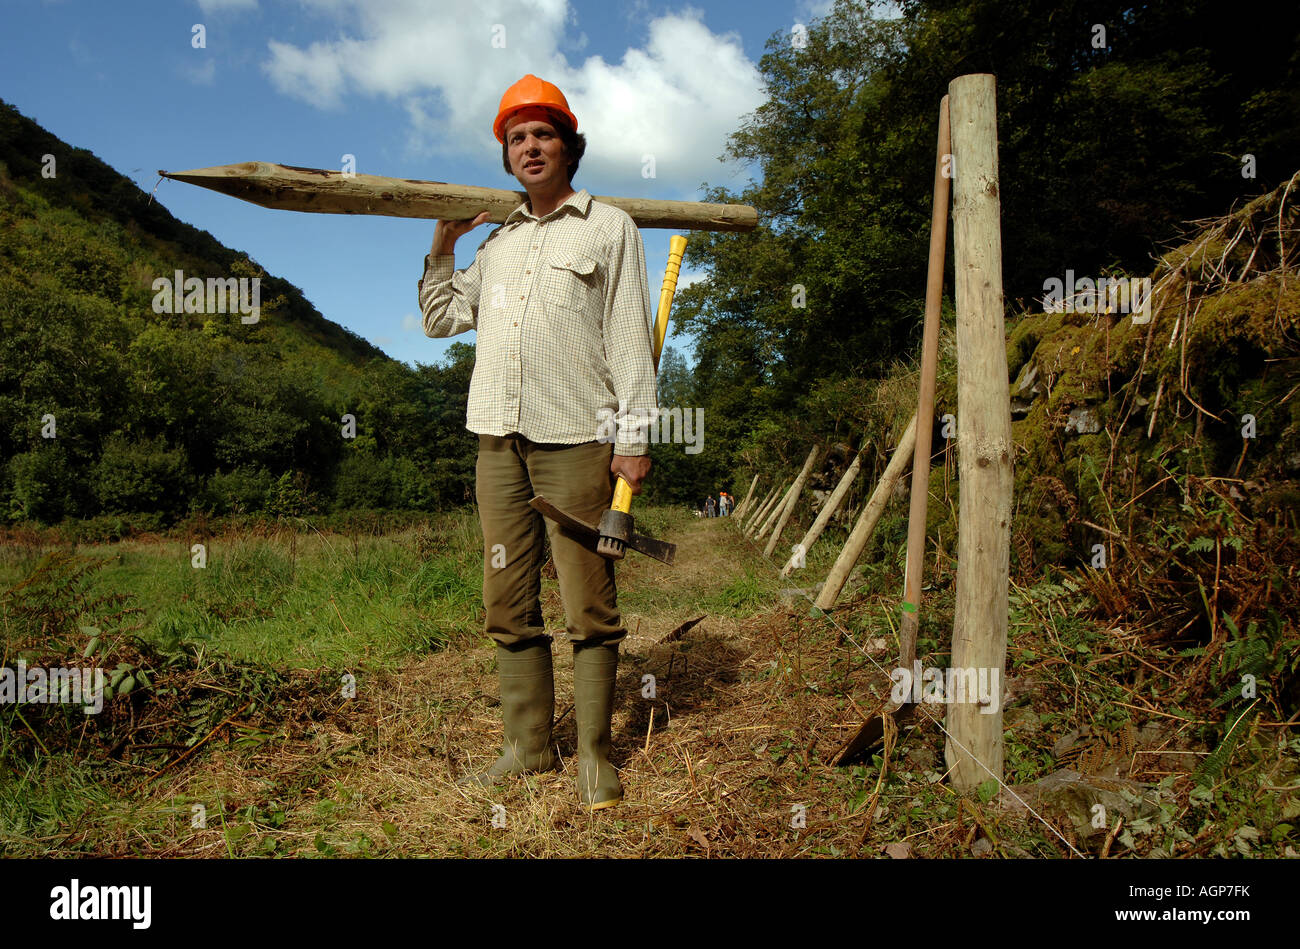 Image result for man with fence posts